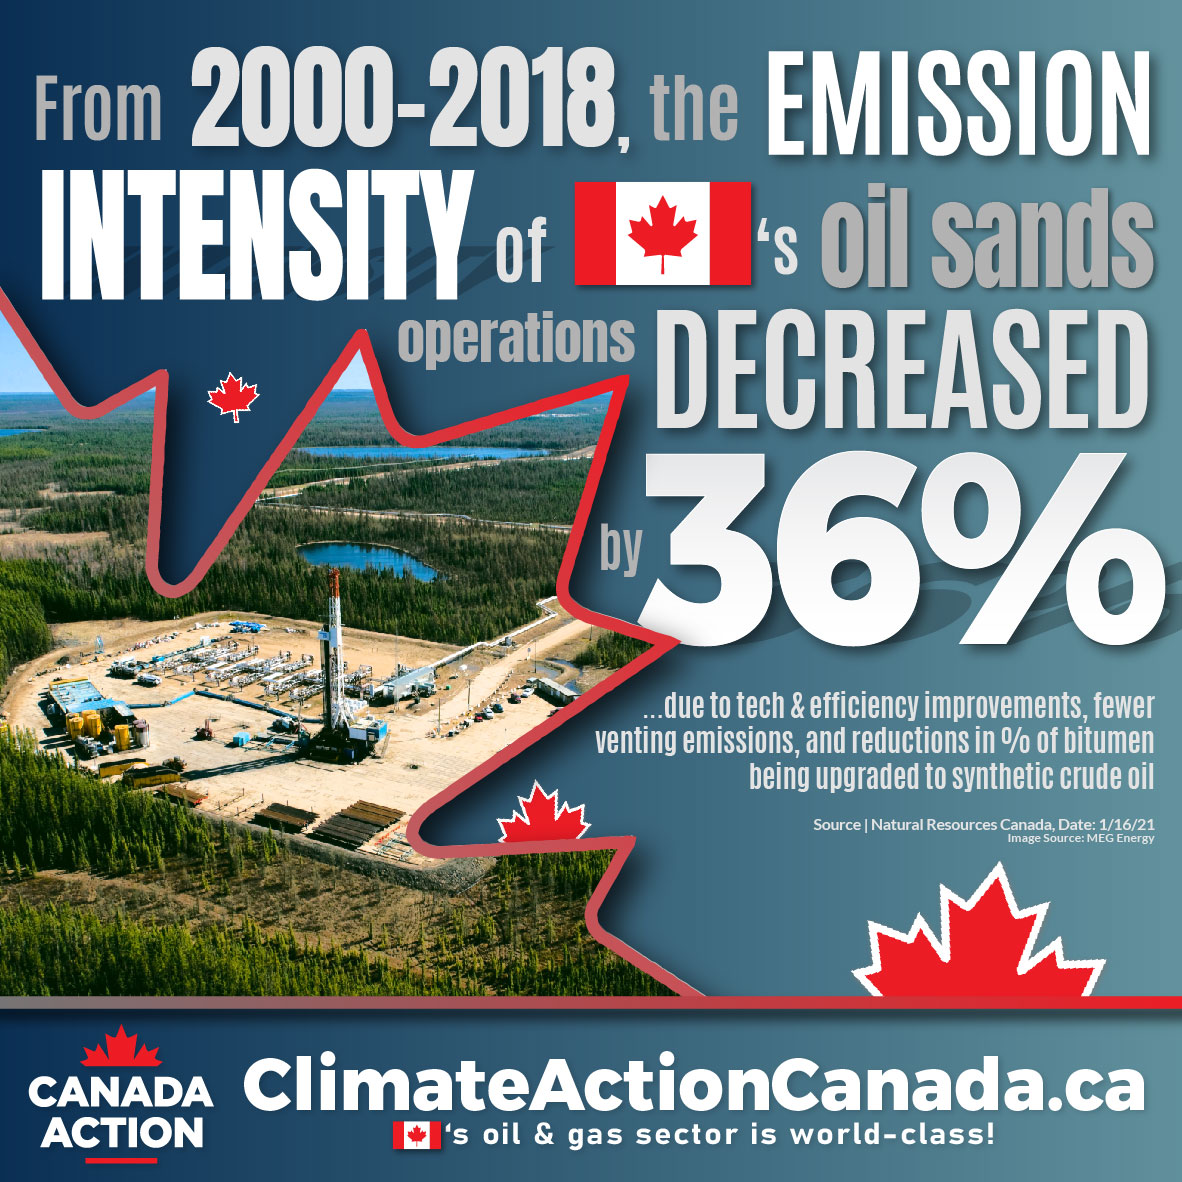 Canada Reduced Oil Sands GHG Emission Intensities by 36% Since 2000